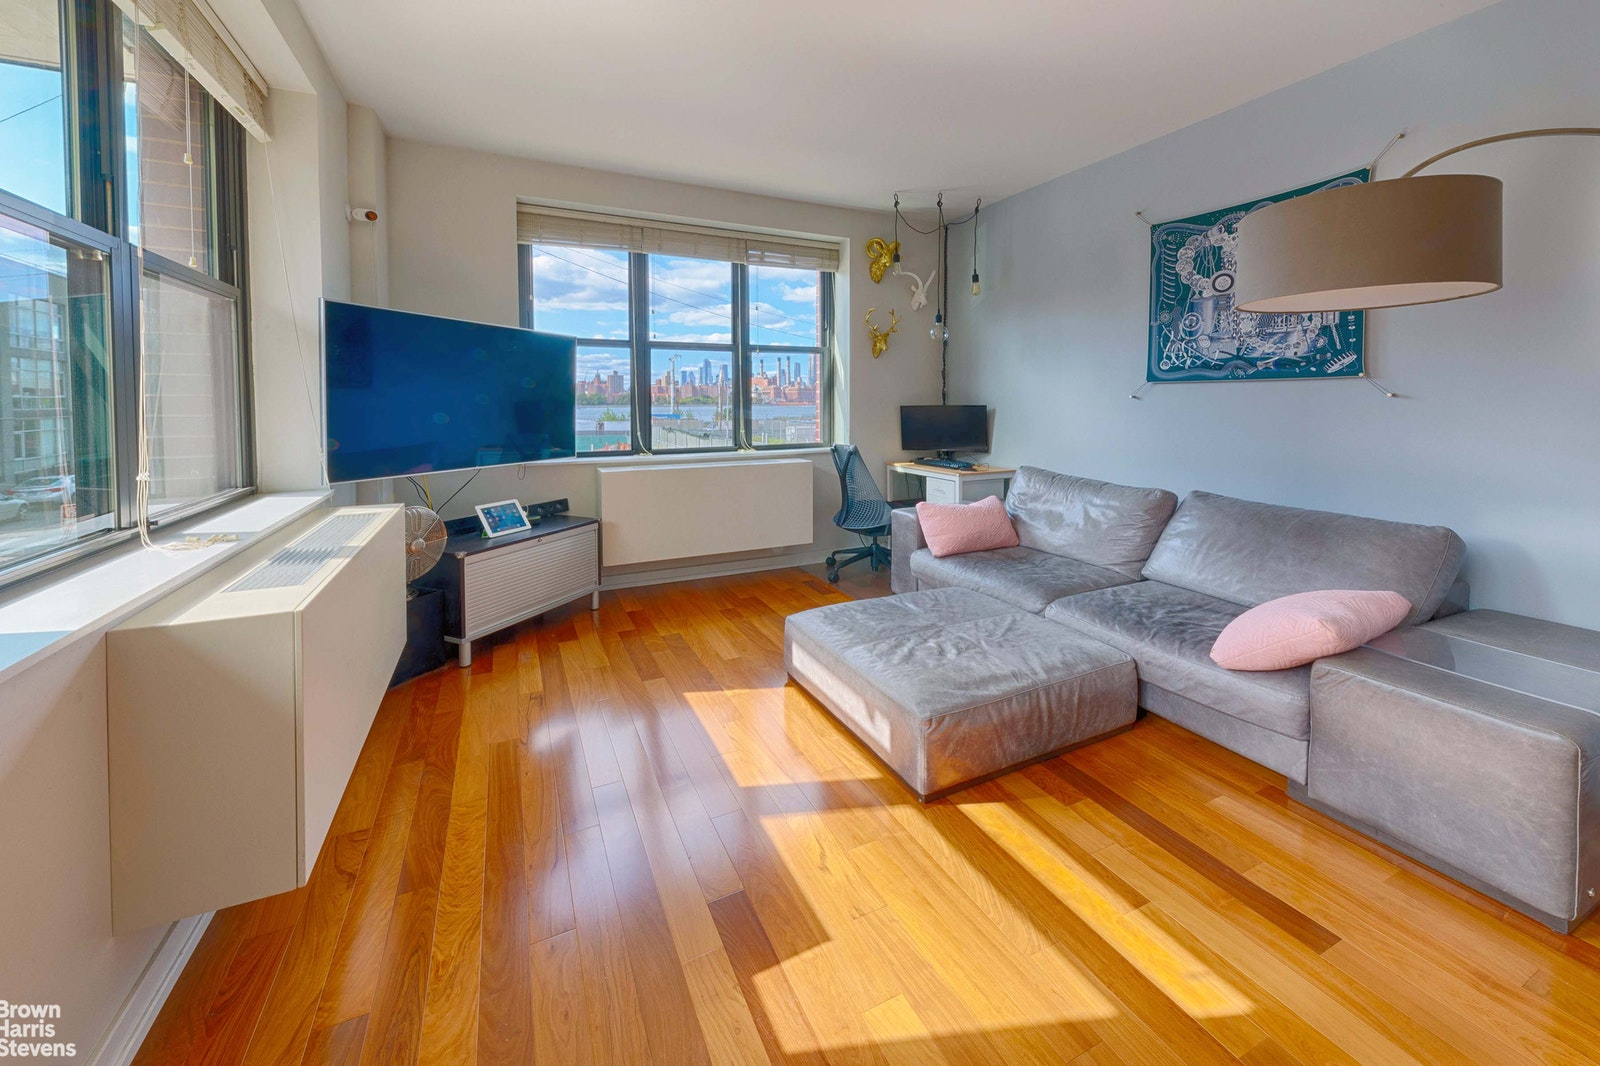 58 Metropolitan Avenue 2h, Williamsburg, Brooklyn, NY, 11249, $899,000, Property For Sale, Halstead Real Estate, Photo 1